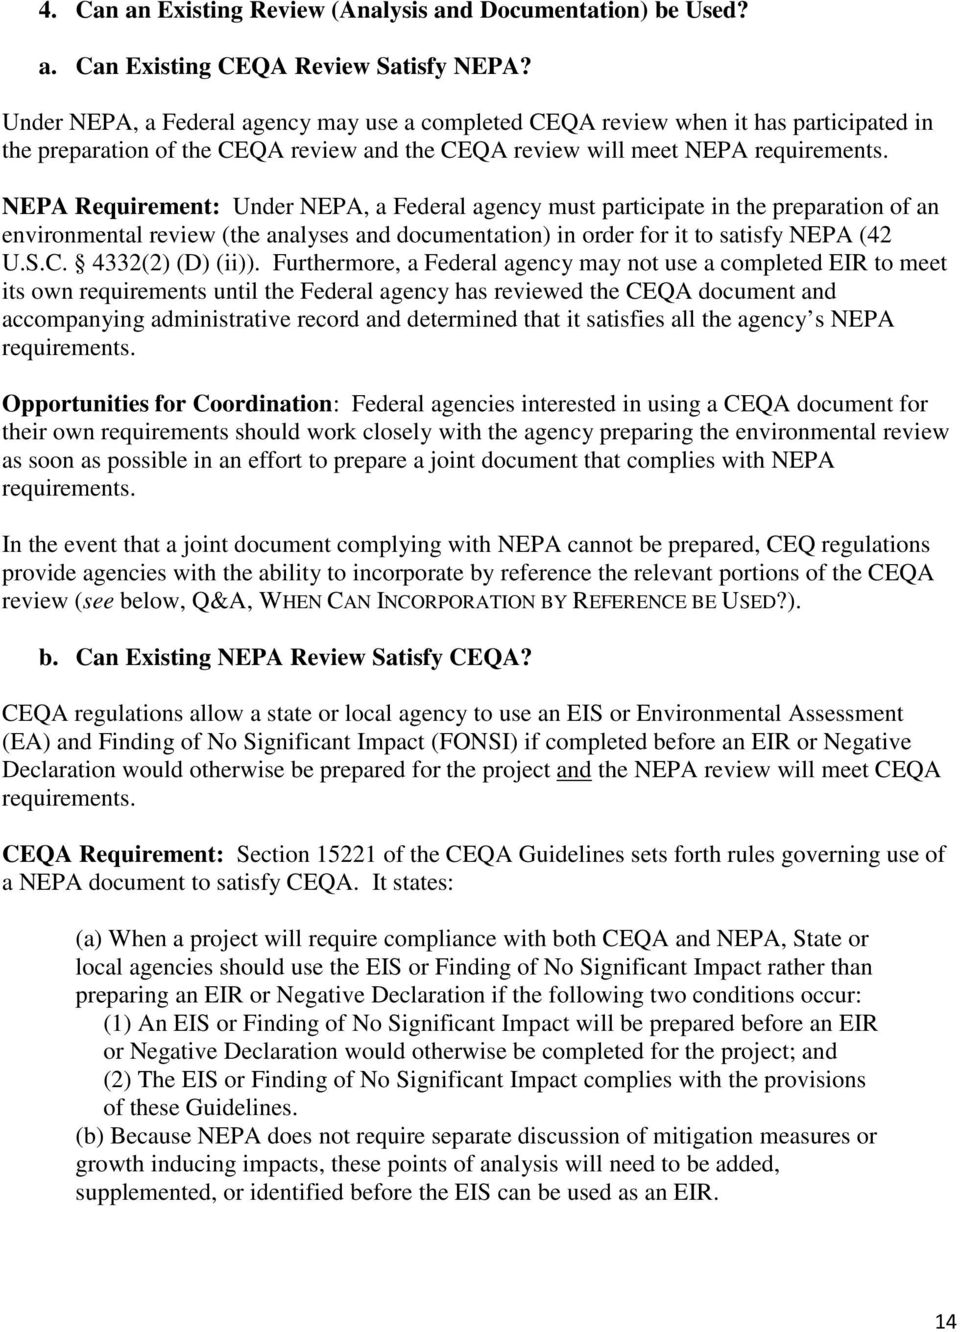 NEPA Requirement: Under NEPA, a Federal agency must participate in the preparation of an environmental review (the analyses and documentation) in order for it to satisfy NEPA (42 U.S.C.